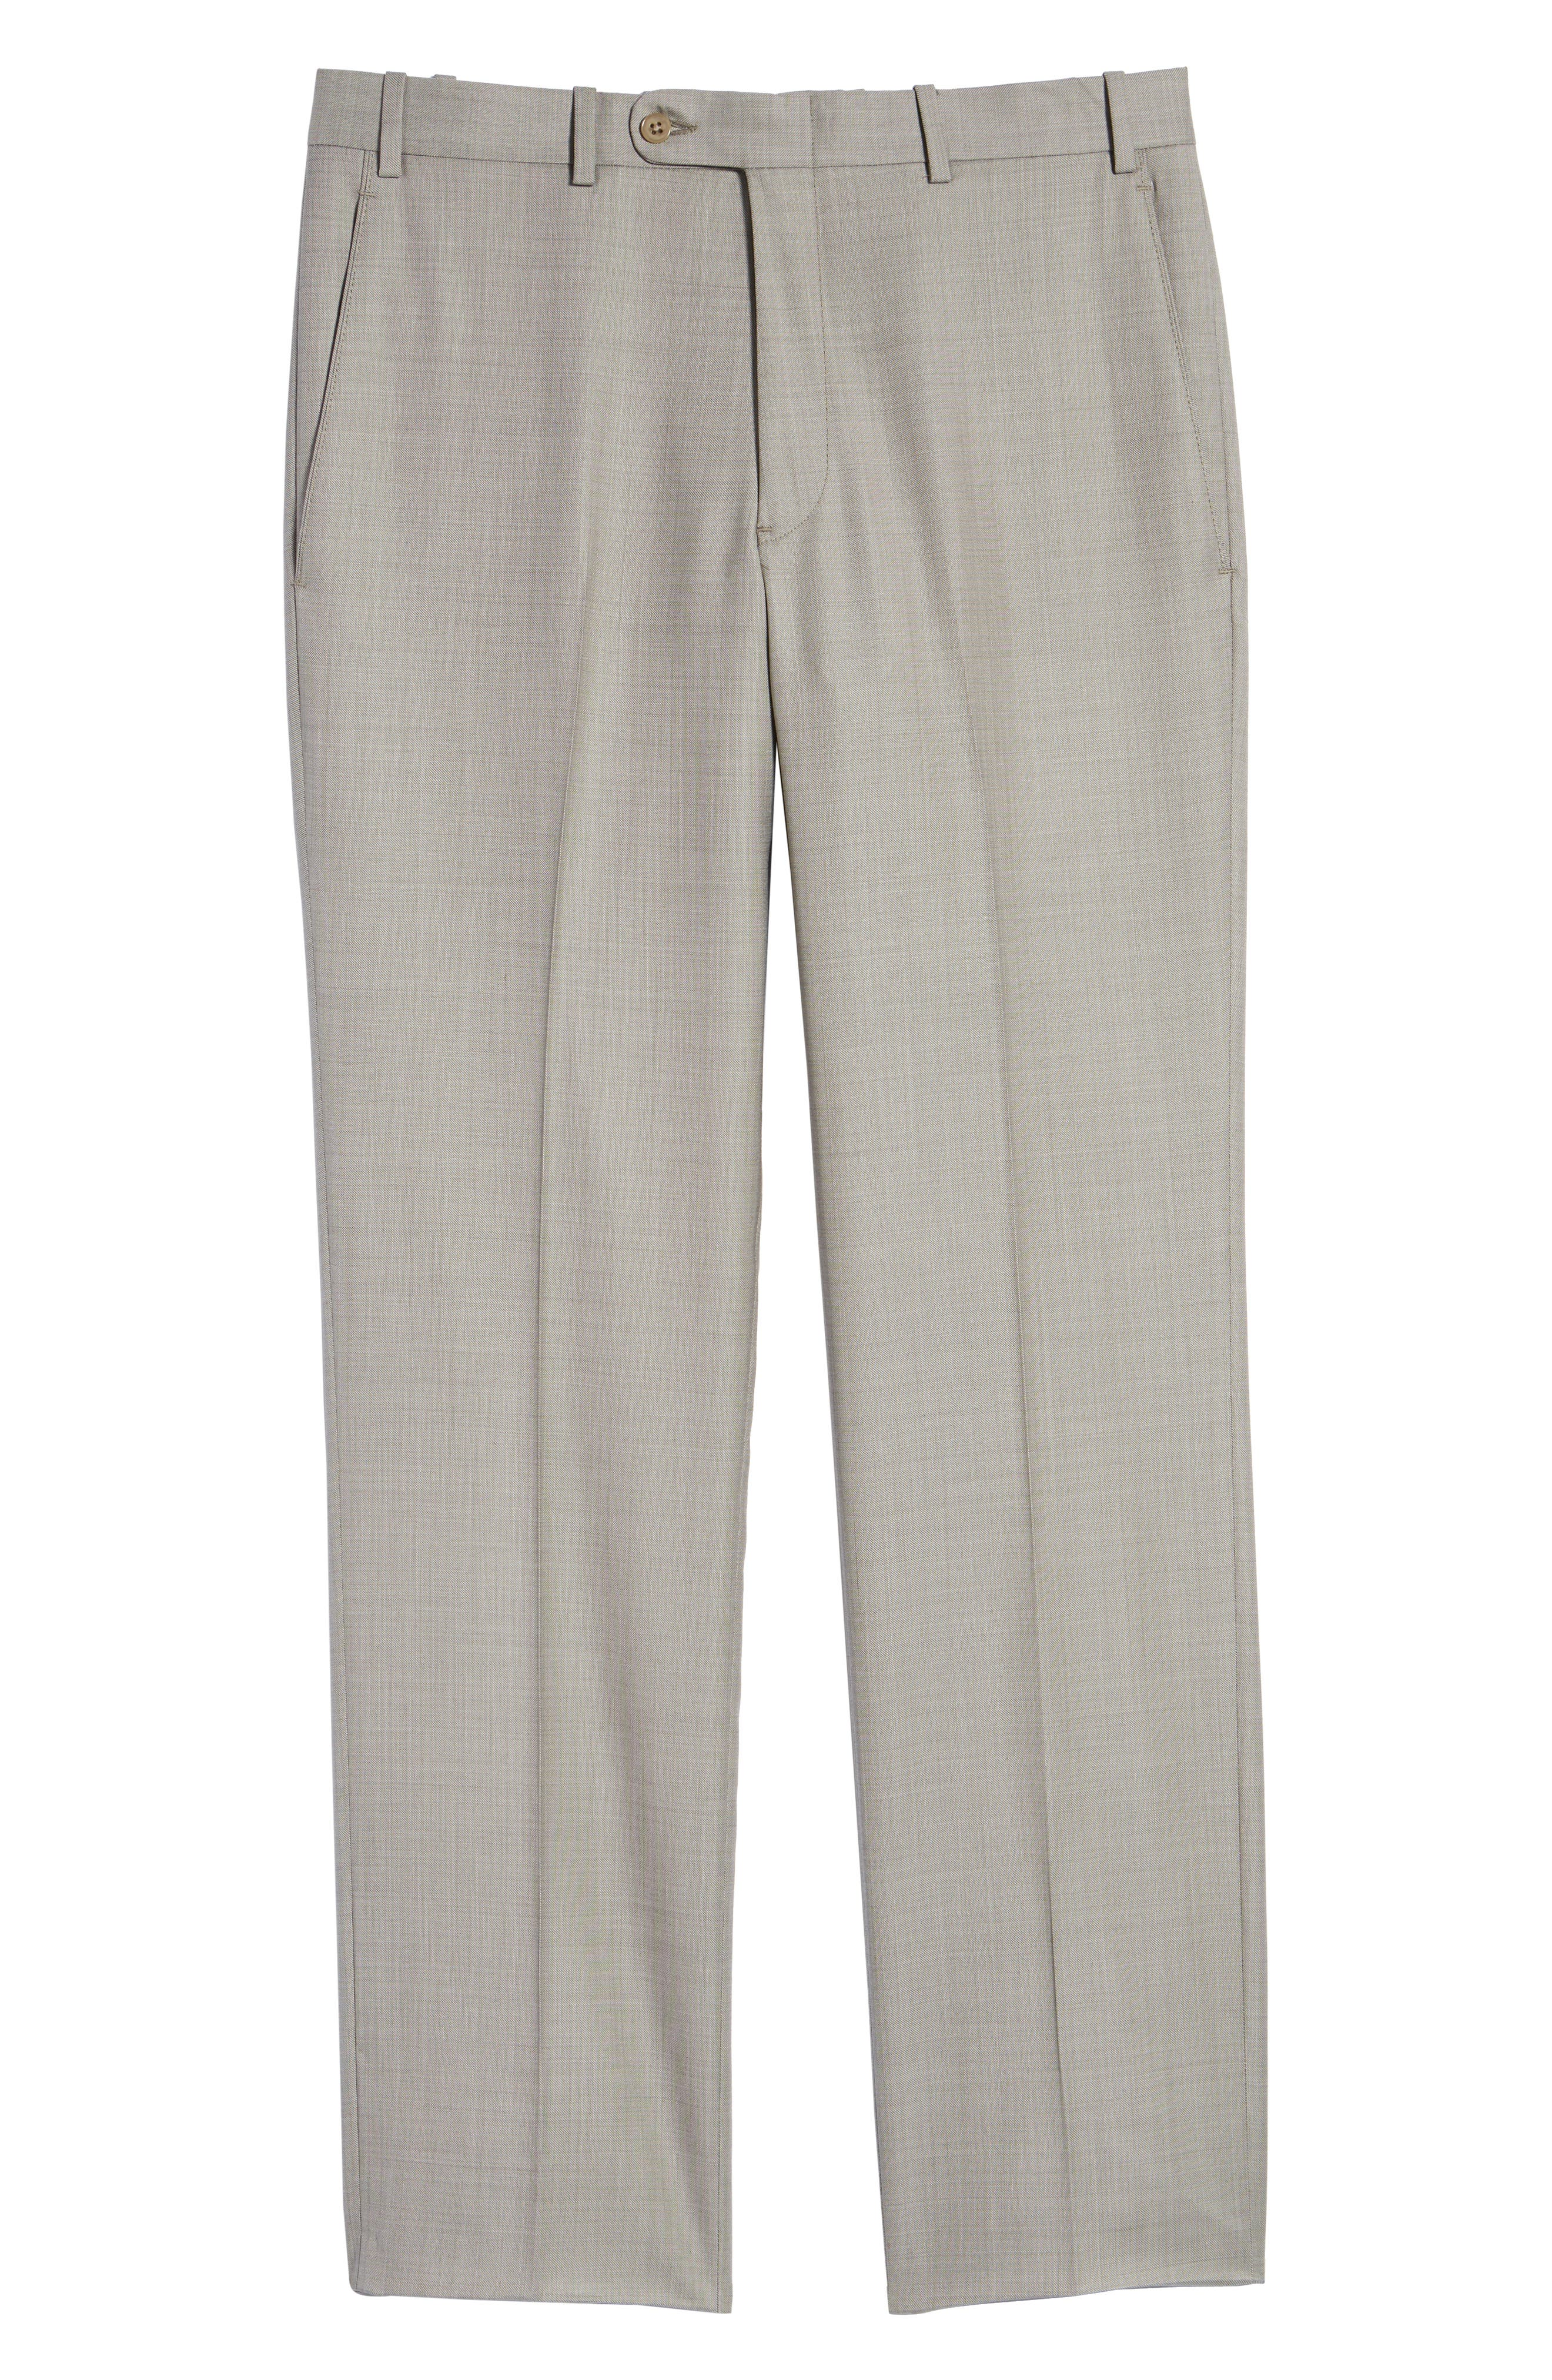 Torino Flat Front Solid Wool Trousers,                             Alternate thumbnail 18, color,